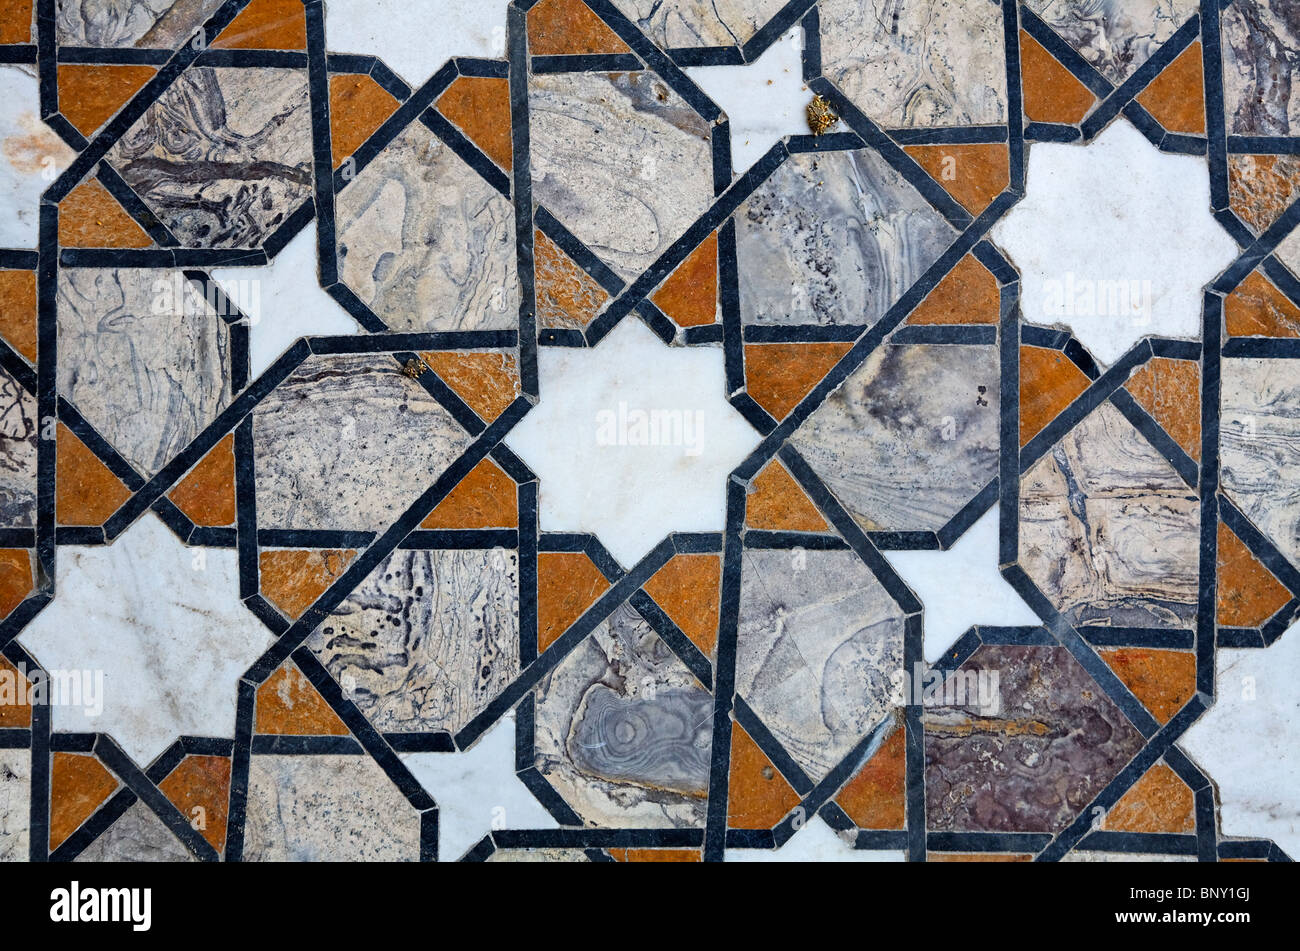 Pakistan Lahore Inlaid Marble Floor Design At Lahore Fort Stock